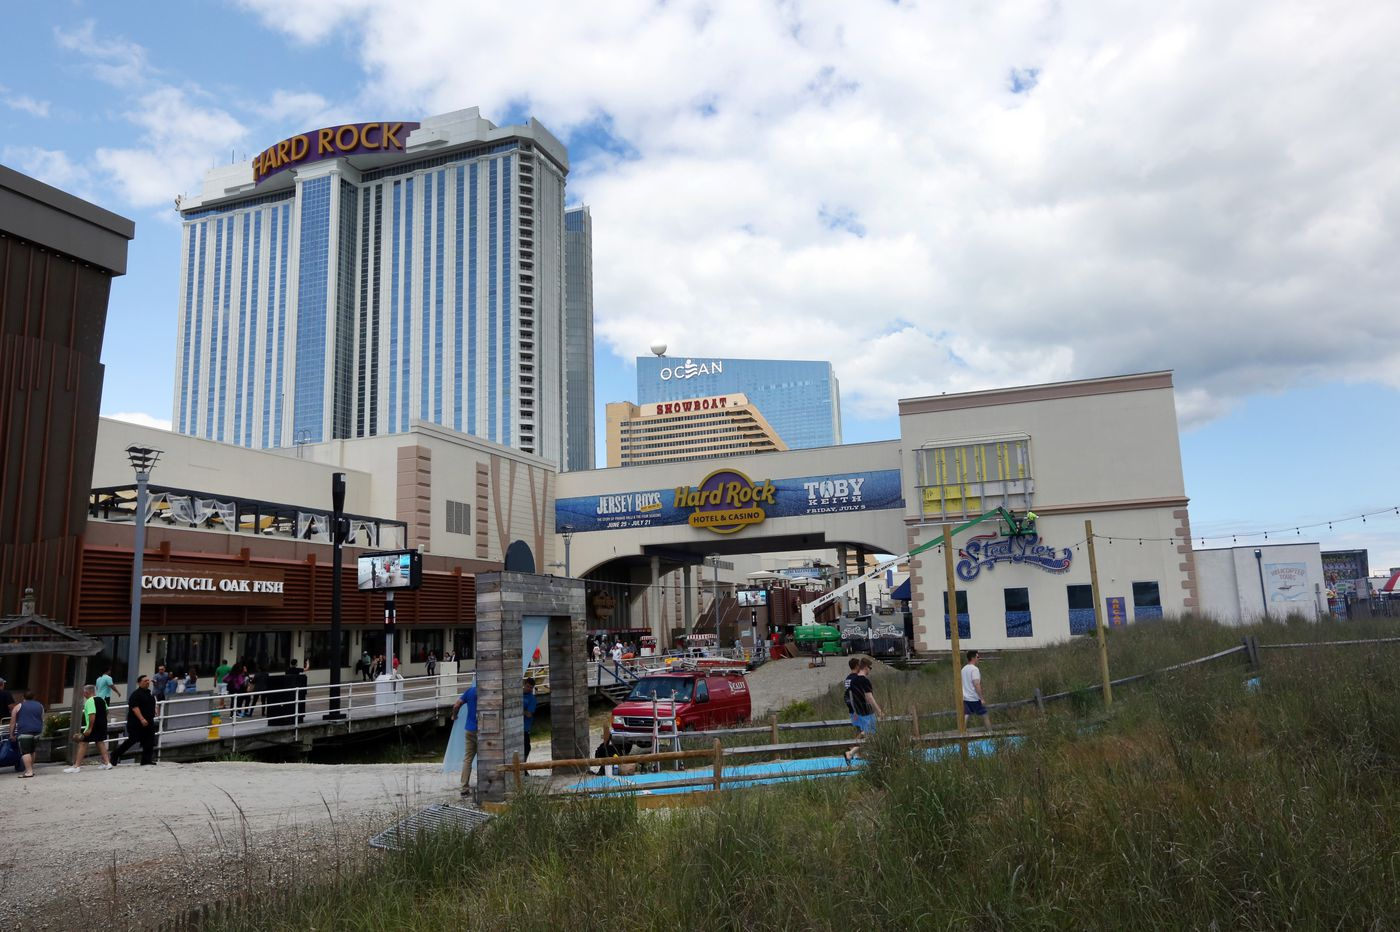 Can a 'North Beach' rebrand help revive Atlantic City's Boardwalk?